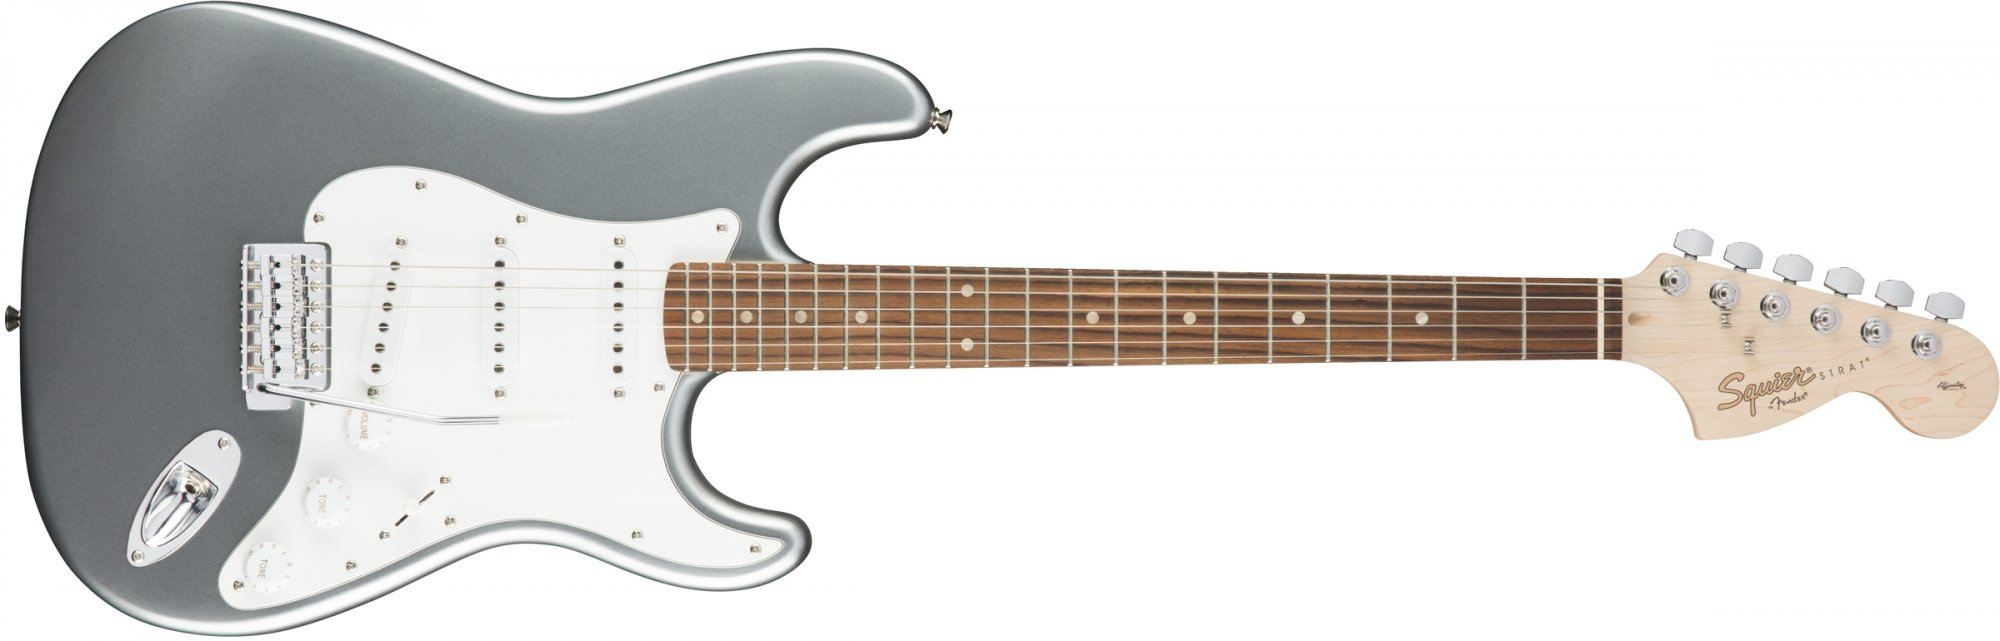 Fender Squier Affinity Stratocaster Slick Silver